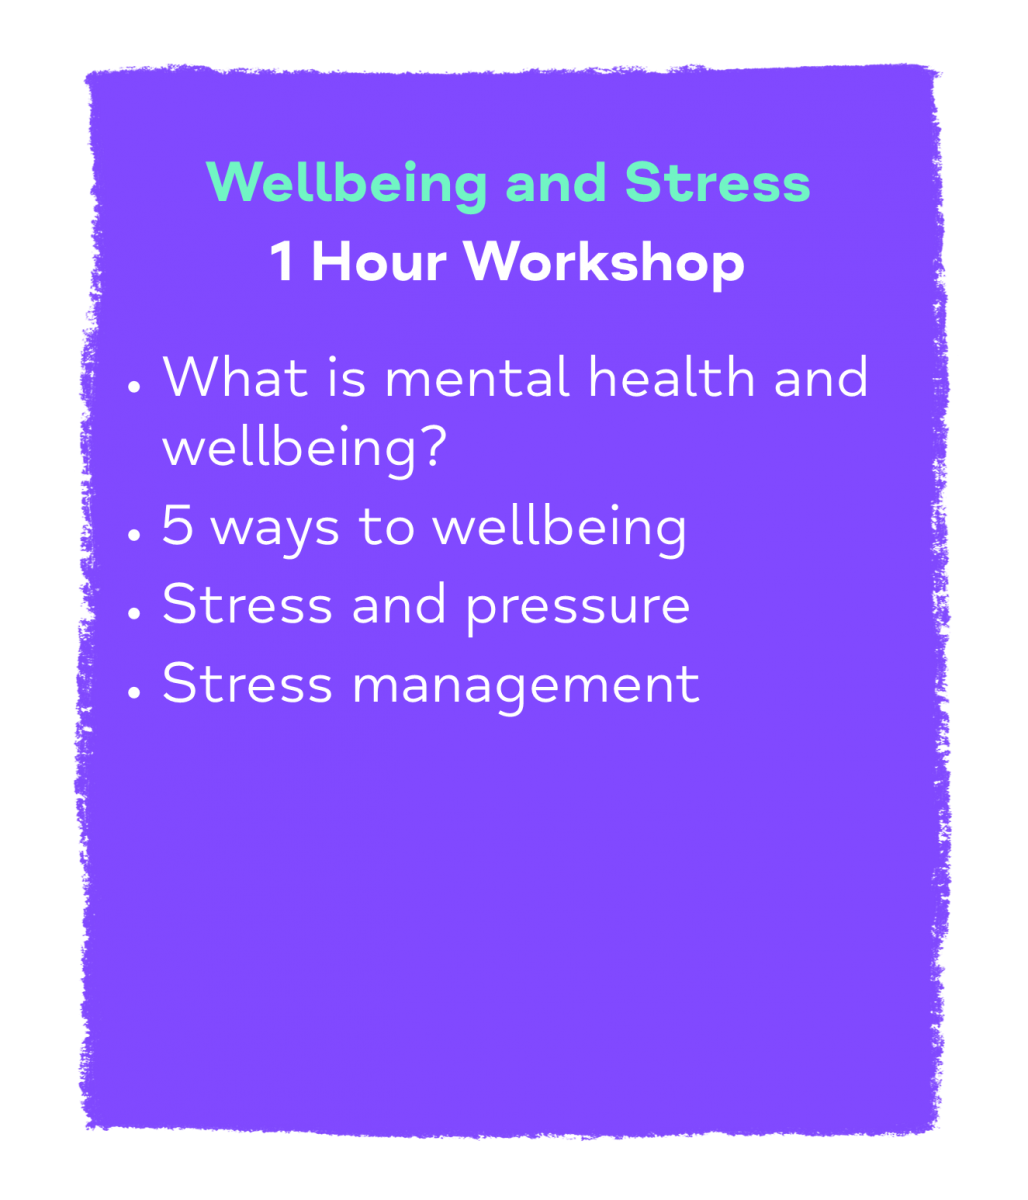 Wellbeing and Stress 1 Hour Workshop